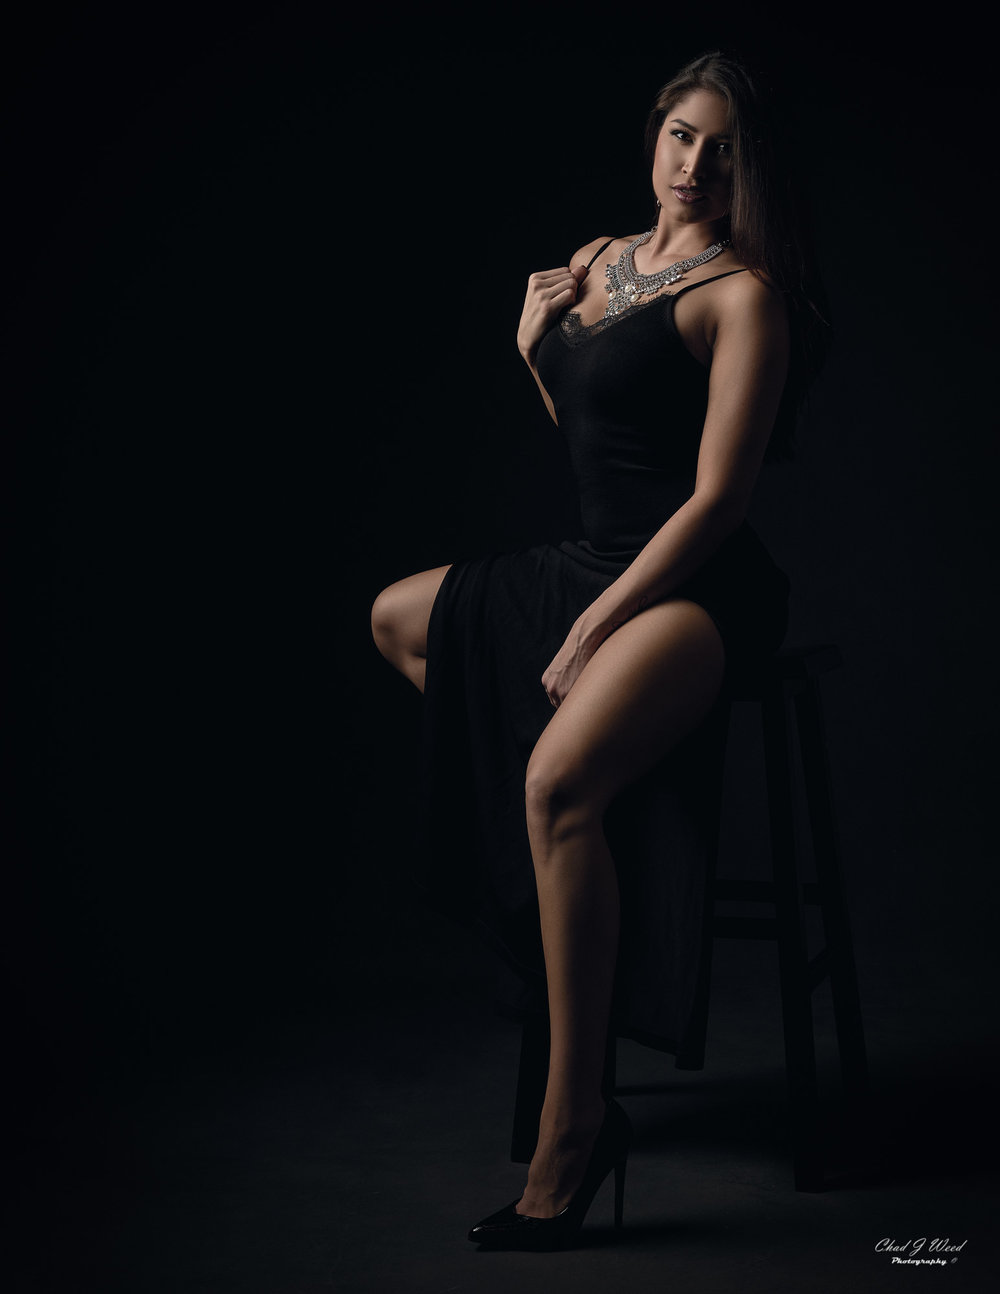 Arizona Fashion Photographer Chad Weed with Fitness Model Ashly - Black Dress 1